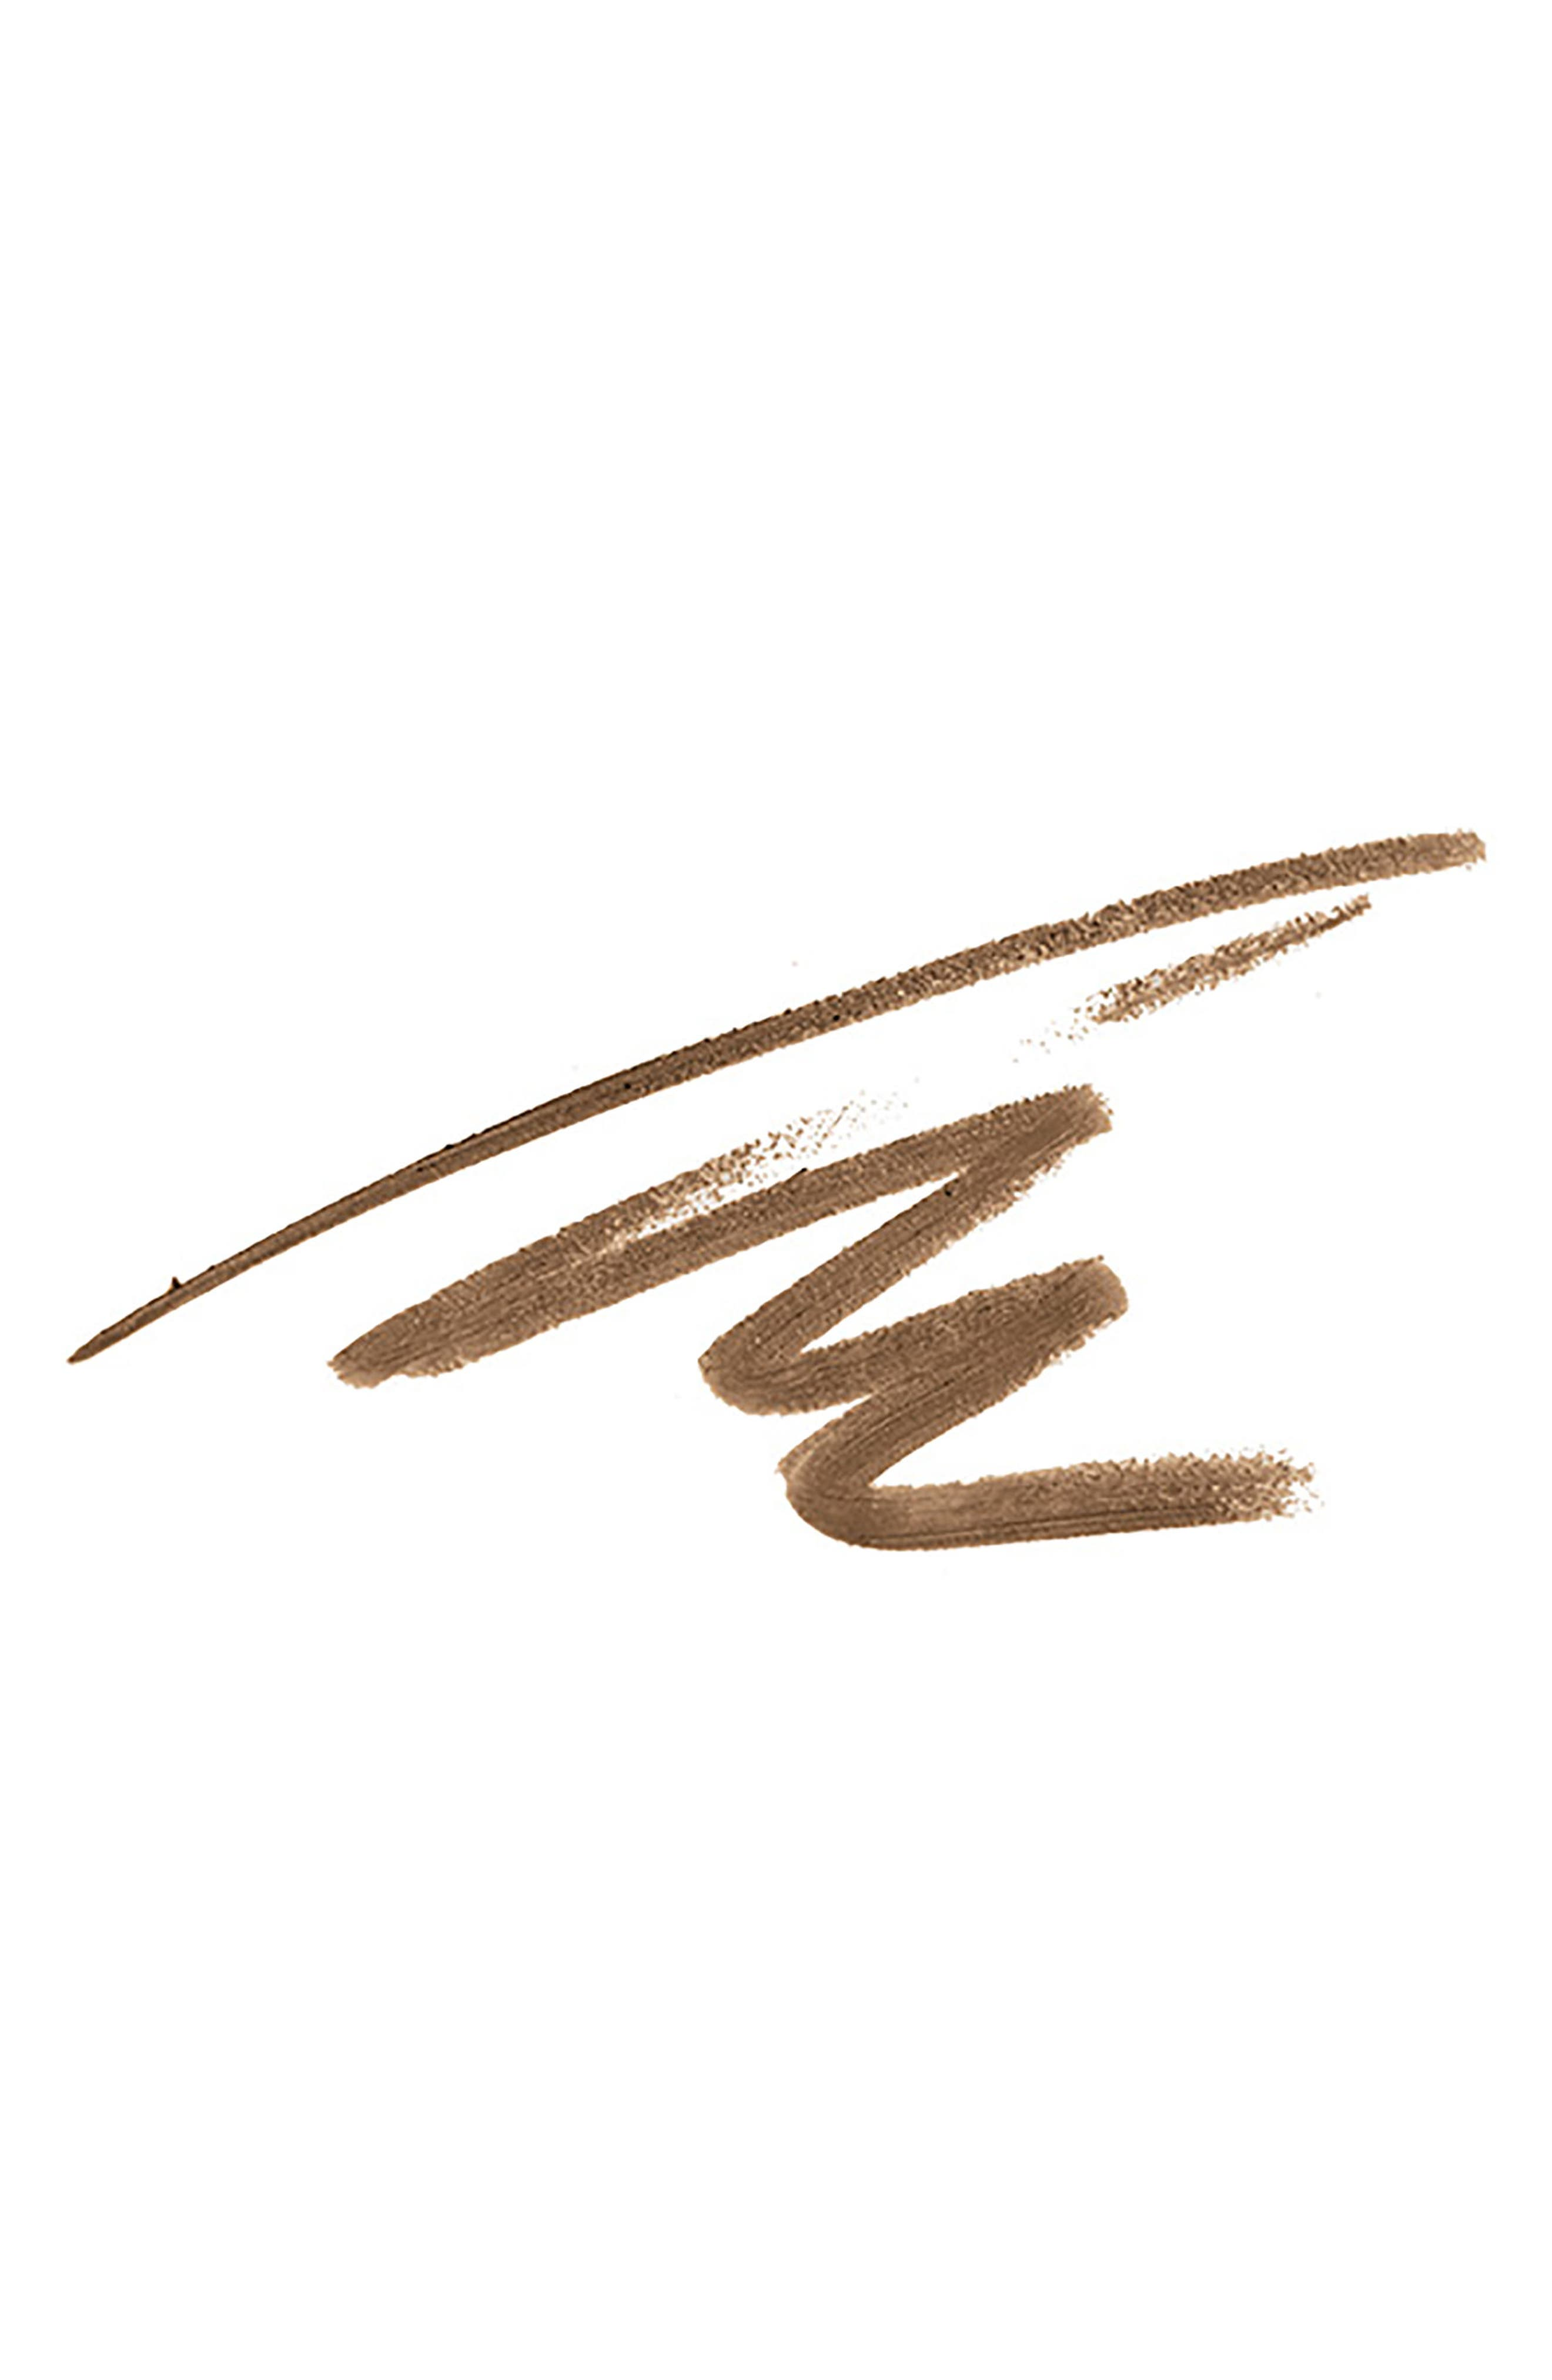 Chocolate Brow-nie Cocoa Powder Brow Pencil,                             Alternate thumbnail 3, color,                             SOFT BROWN